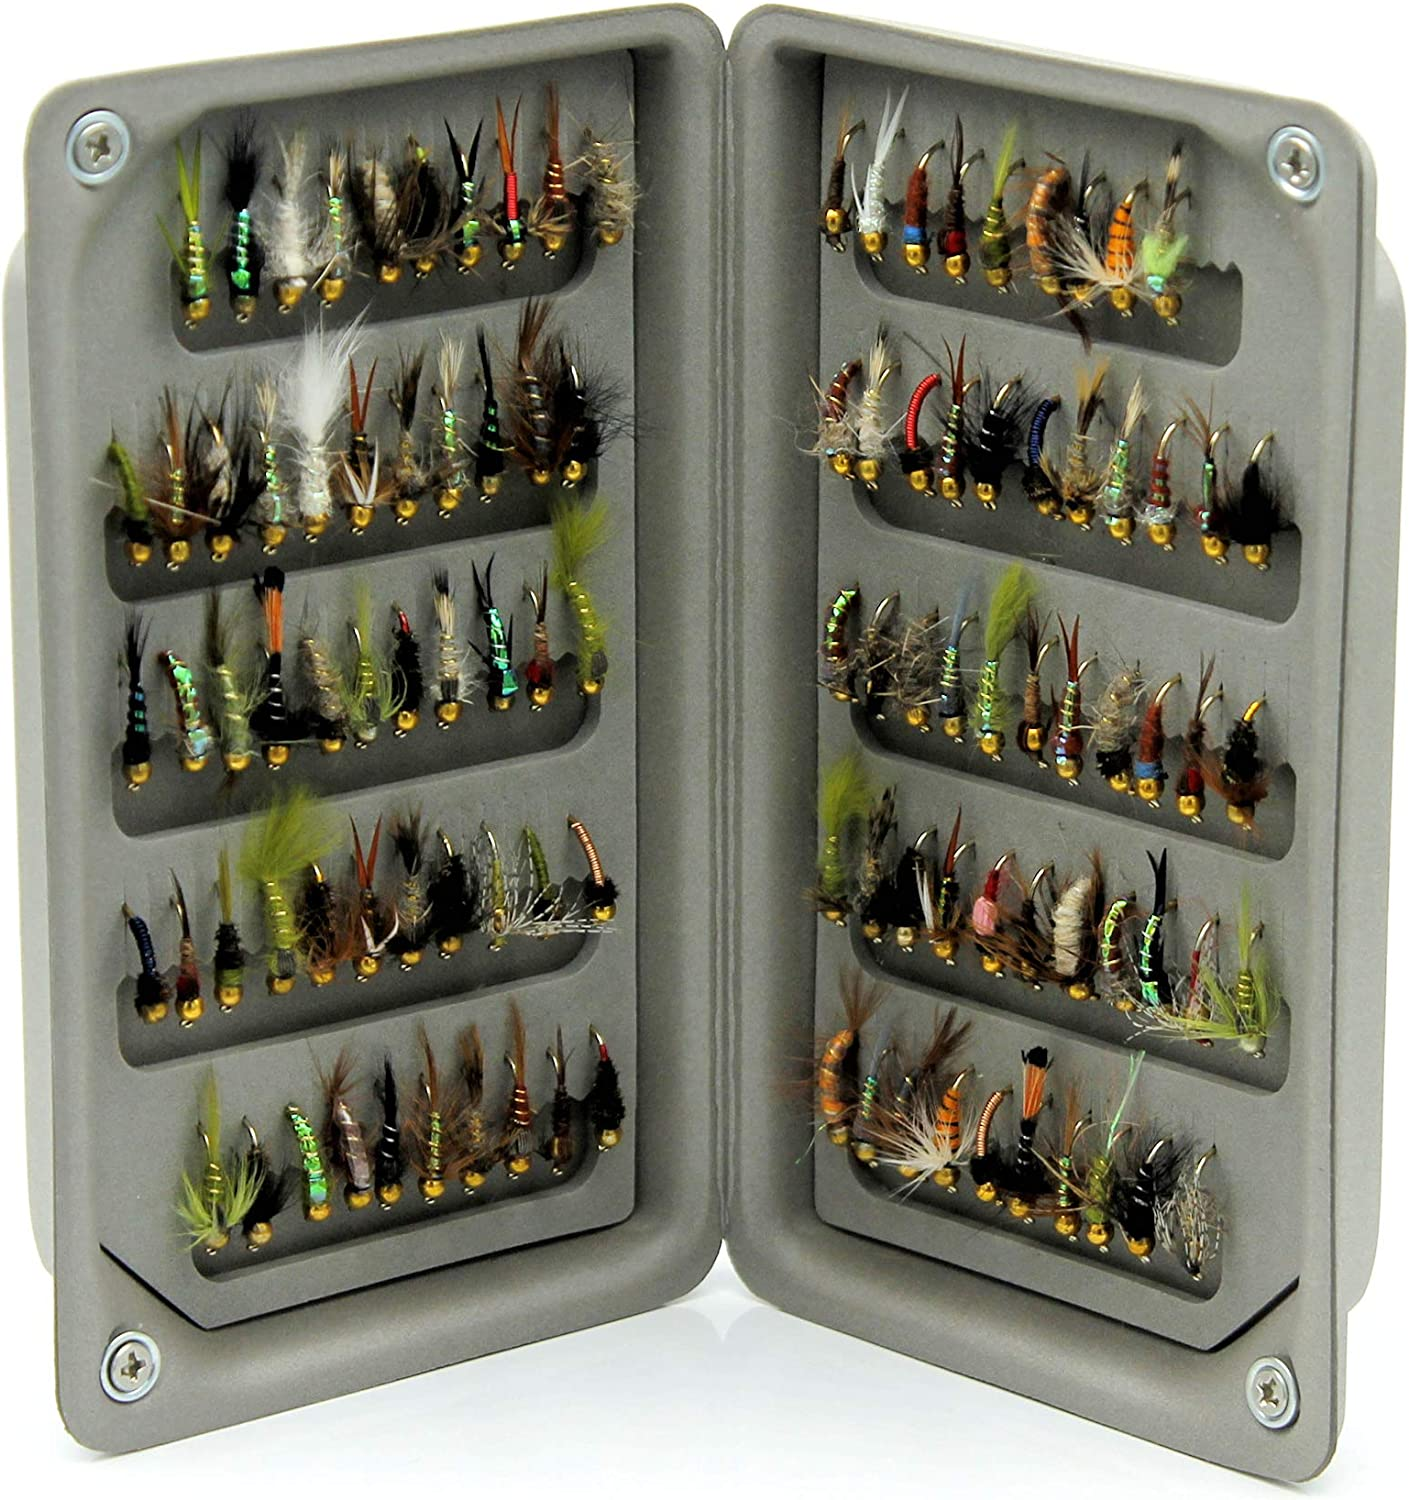 50 25 Lakeland Fishing Supplies Ultra leichte High Density Eva Foam-Fliegenbox 100 oder 208 x Mix Gold Head Nymphe Fliegen f/ür Forellenfischen 10